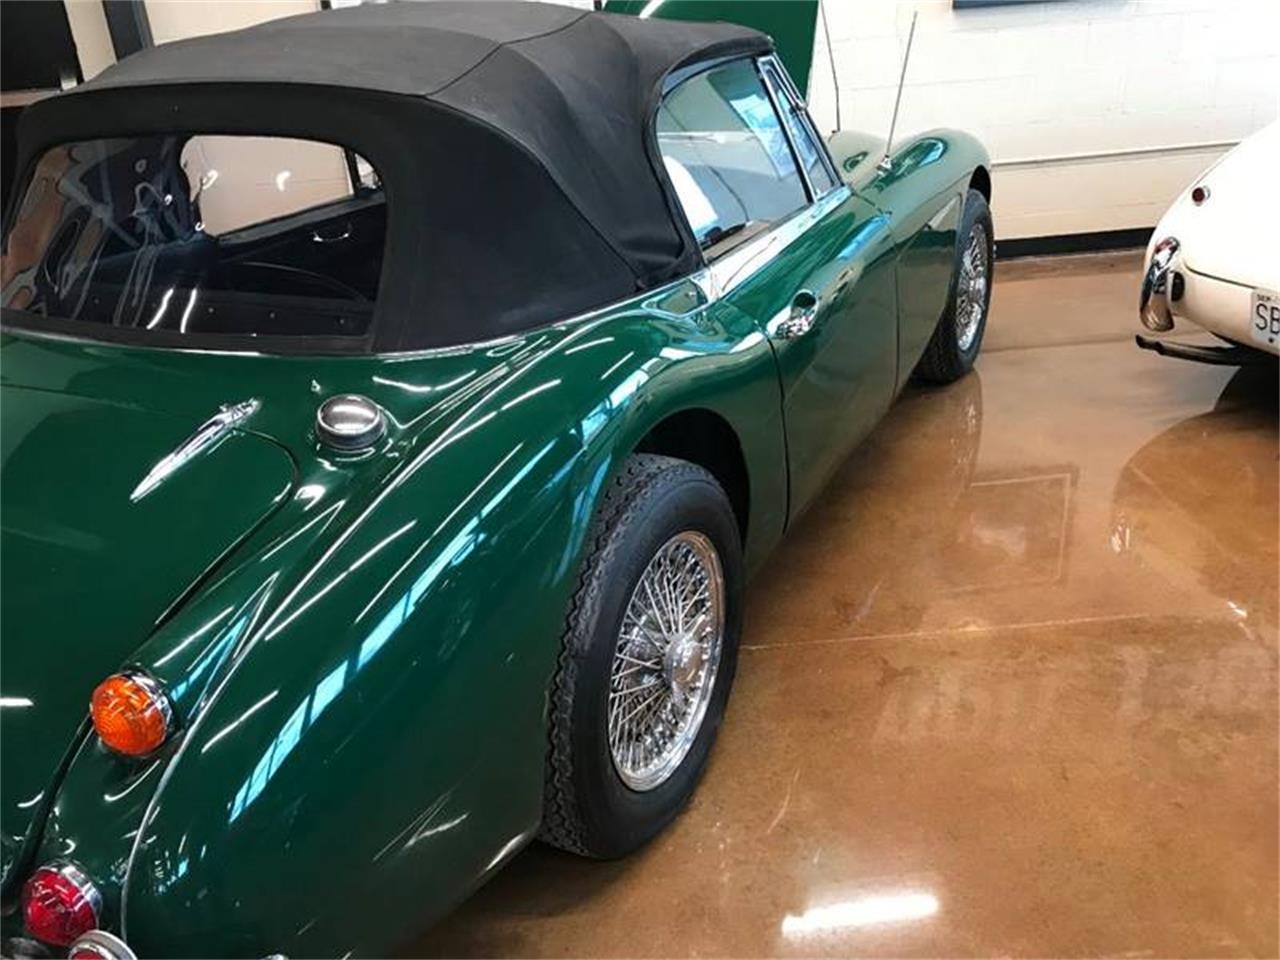 1967 Austin-Healey 3000 Mark III BJ8 for sale in St Louis, MO – photo 10